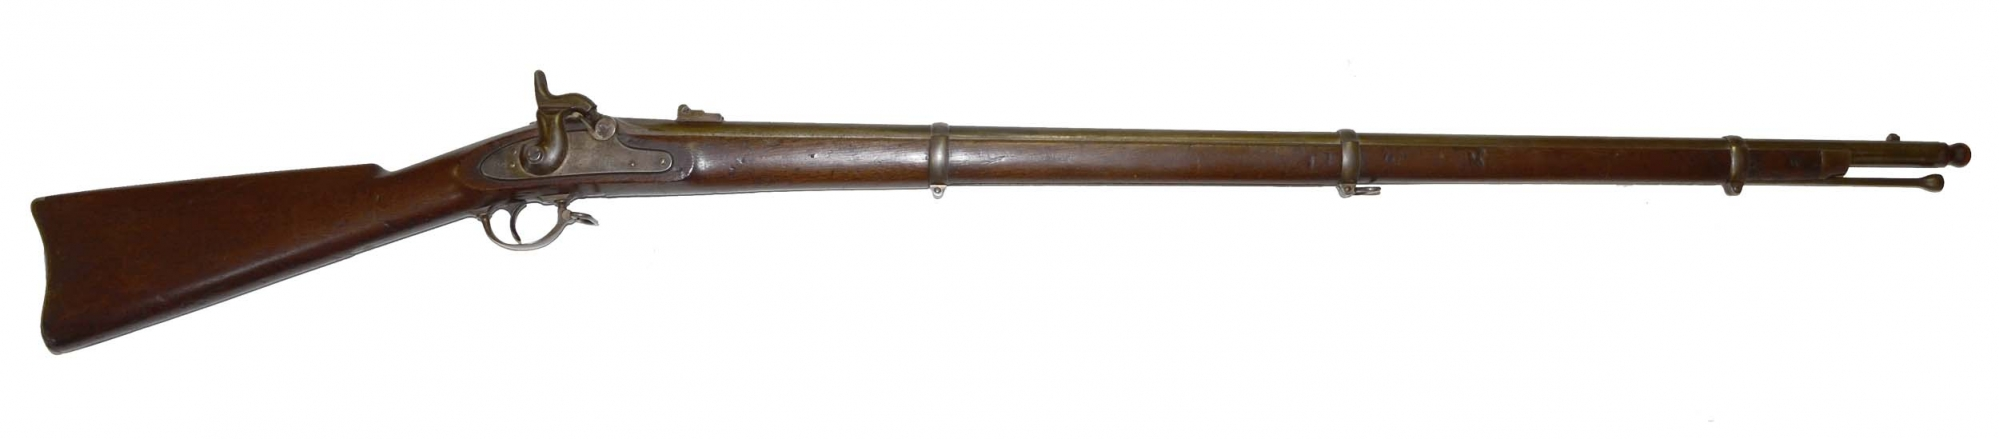 COLT SPECIAL MODEL 1861 MUSKET DATED 1864